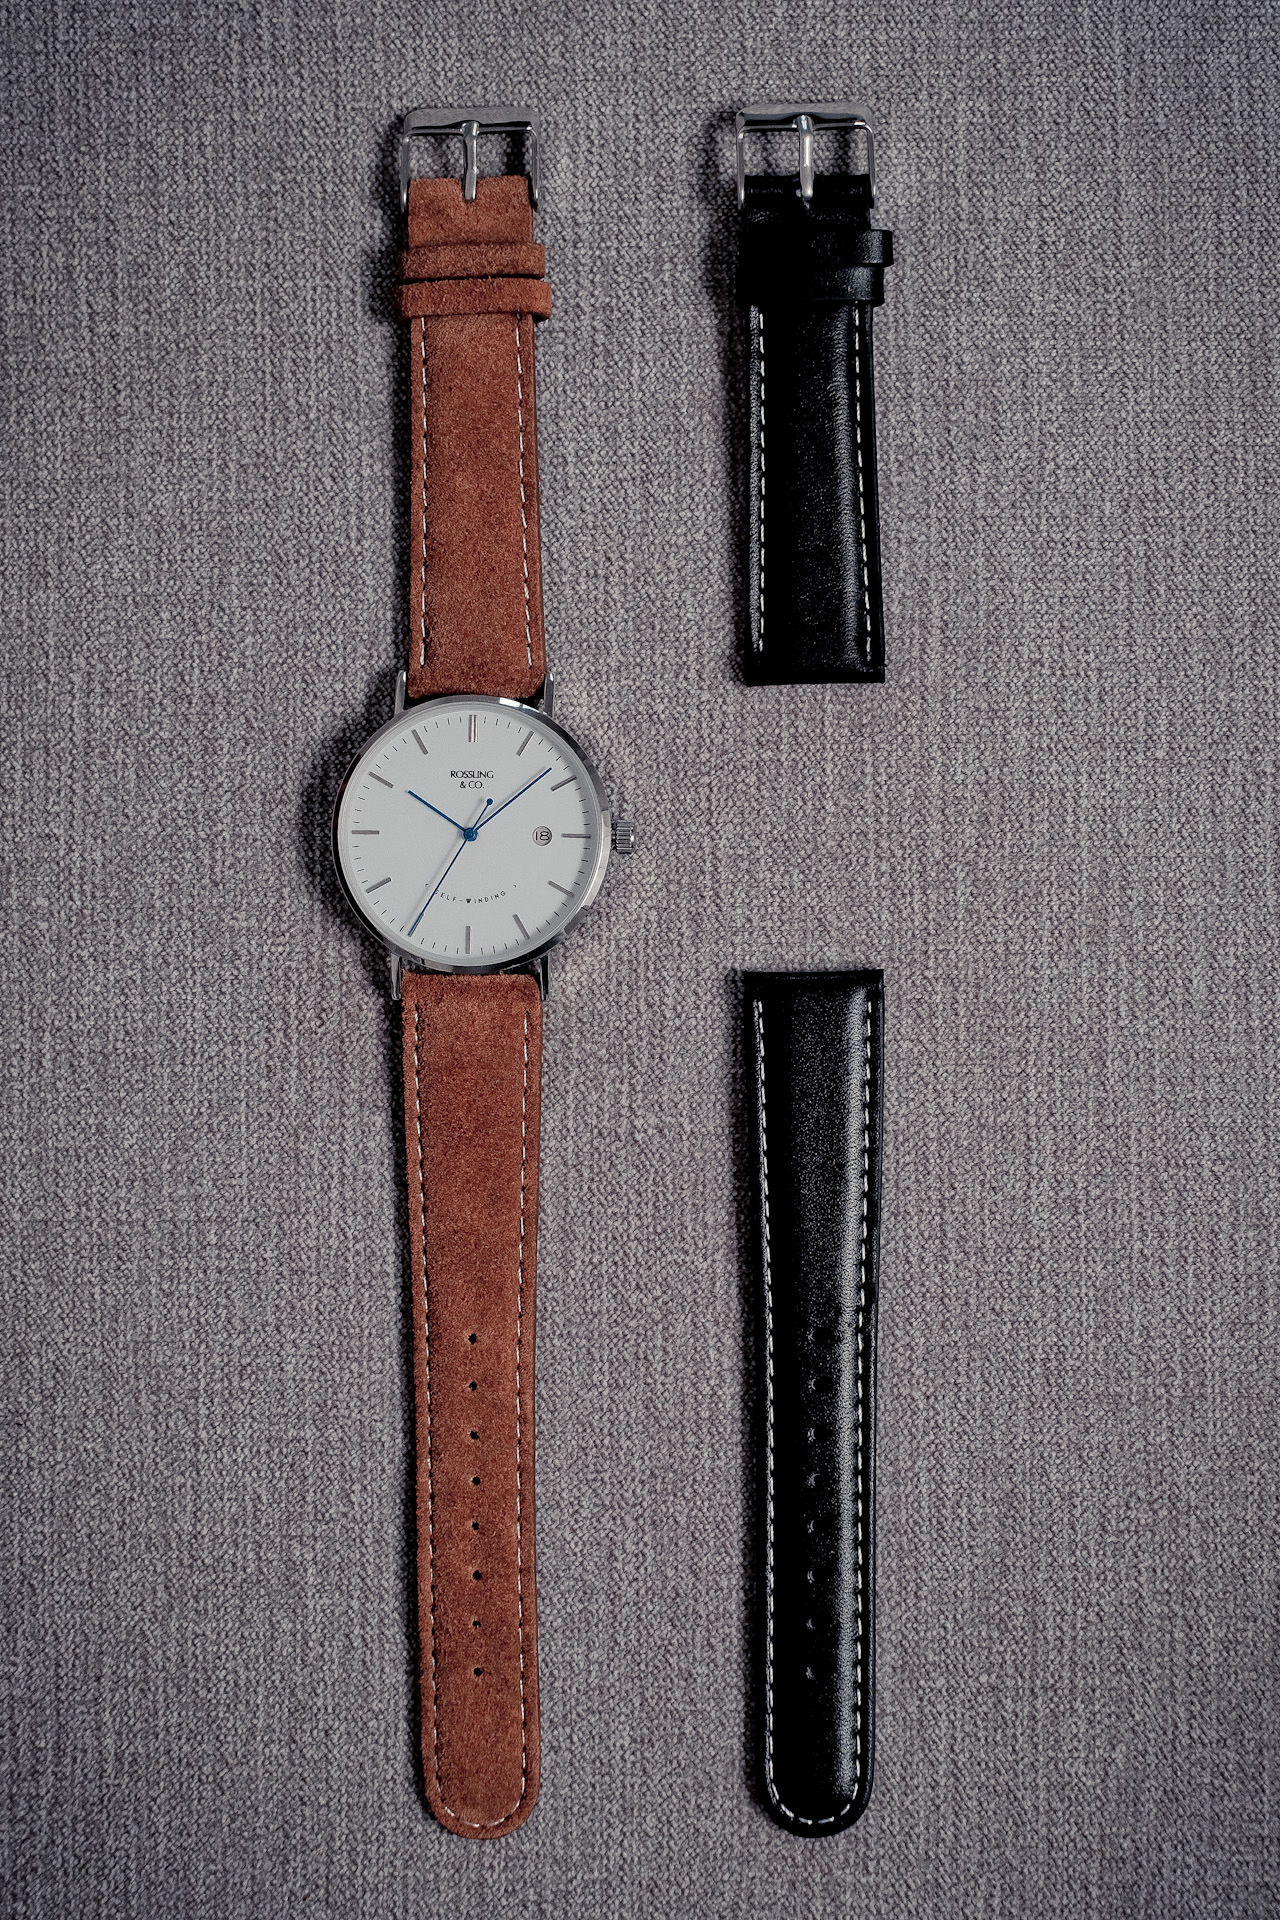 Automatic Wristwatch Strap